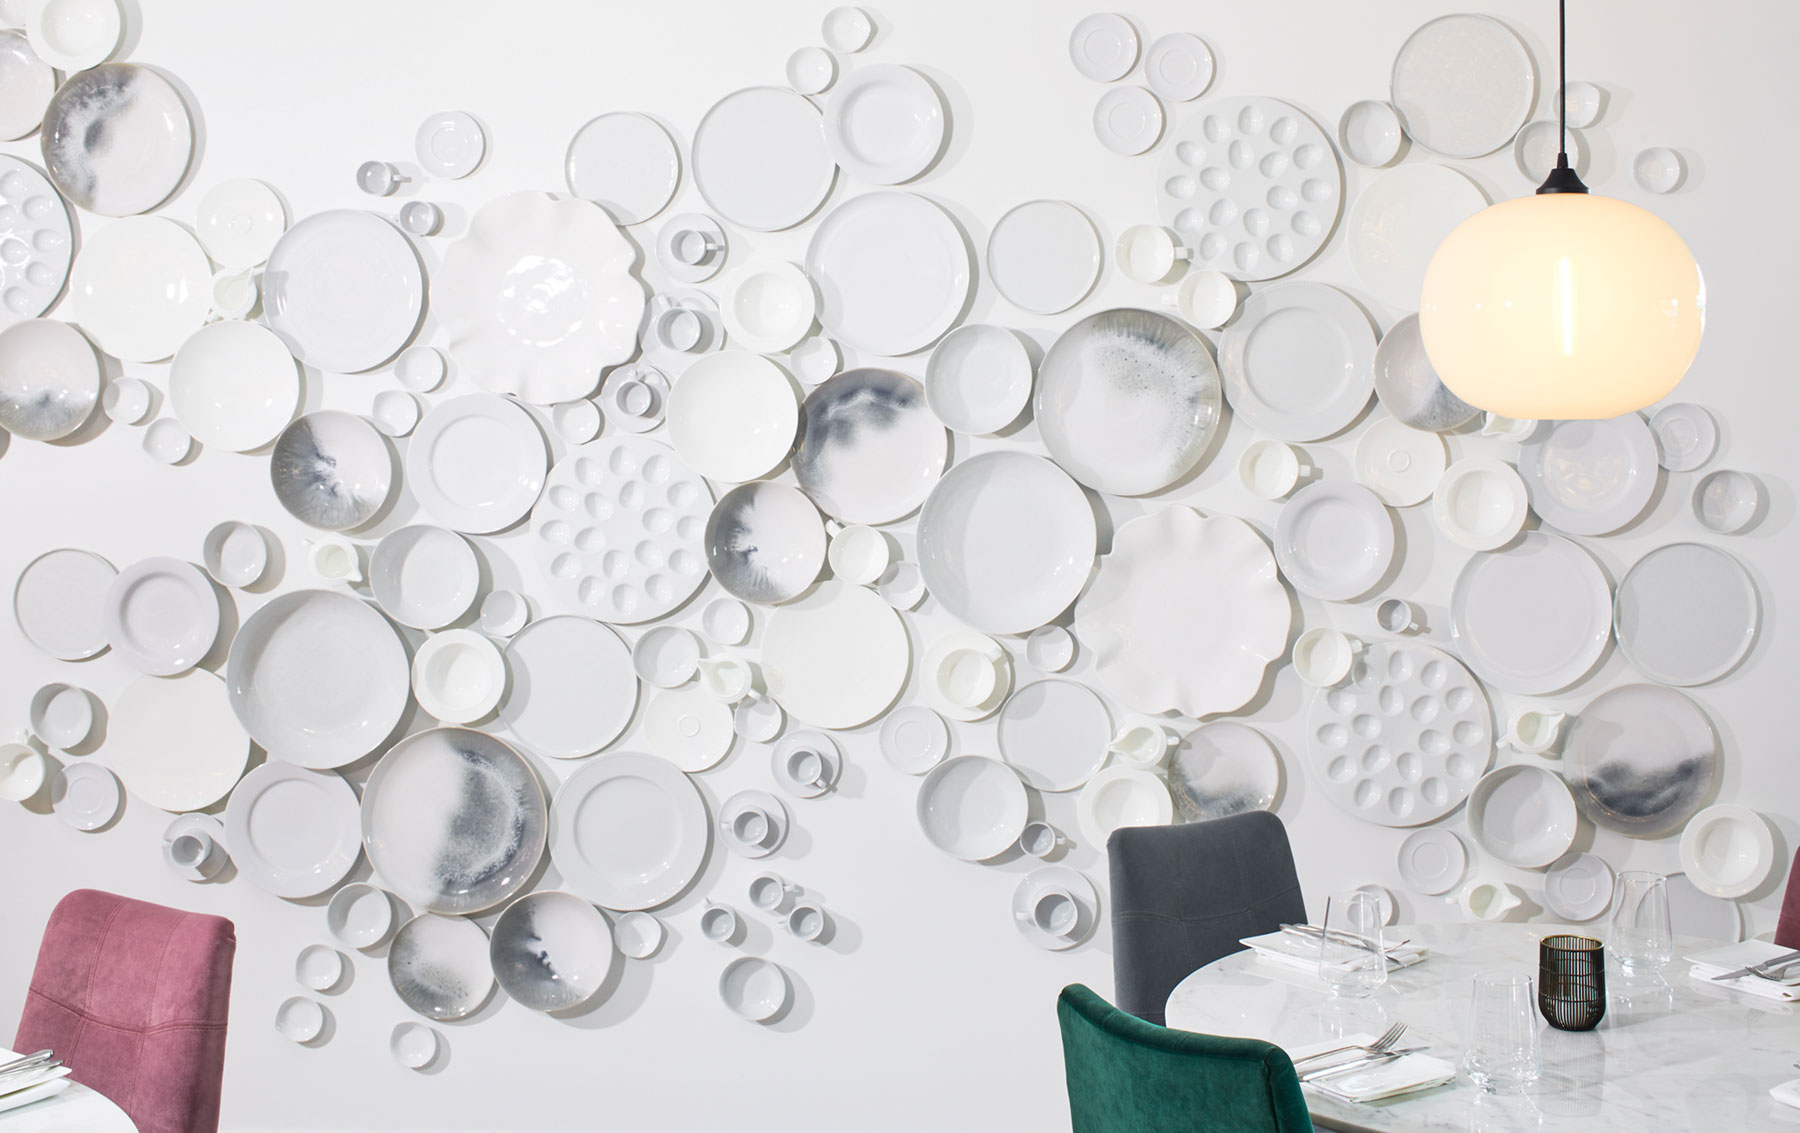 Crate & Barrel restaurant - The Table at Crate plate, dinnerware, and serveware wall art